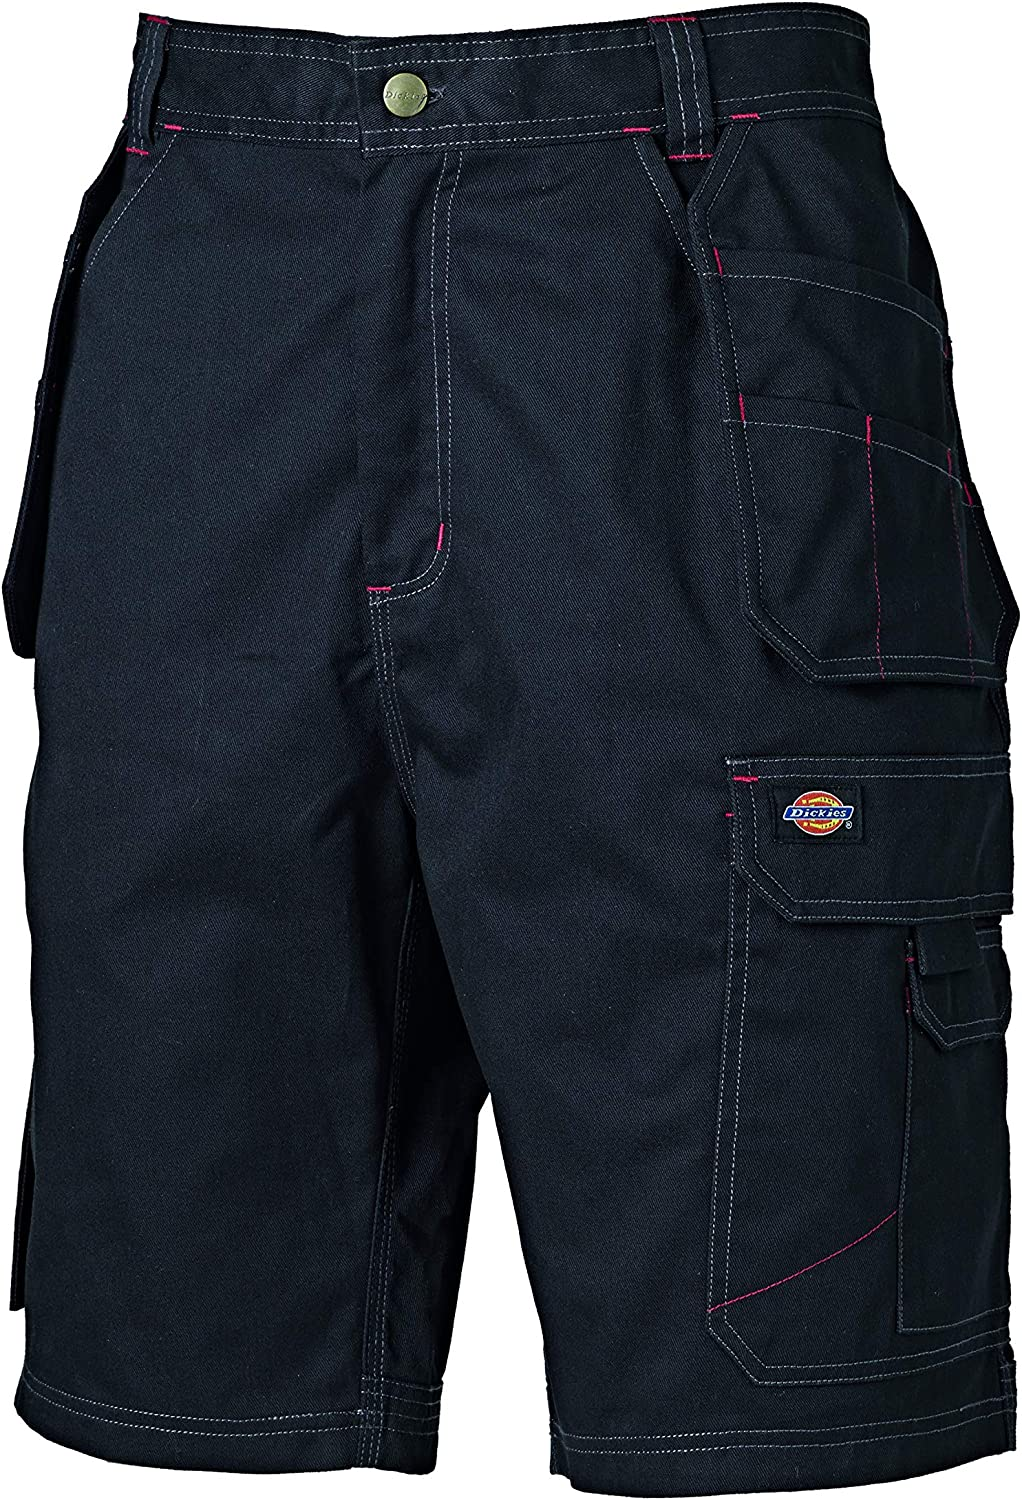 65/% Polyester//35/% Cotton 30 Size Grey Dickies WD802 GY 30 Redhawk Pro Short